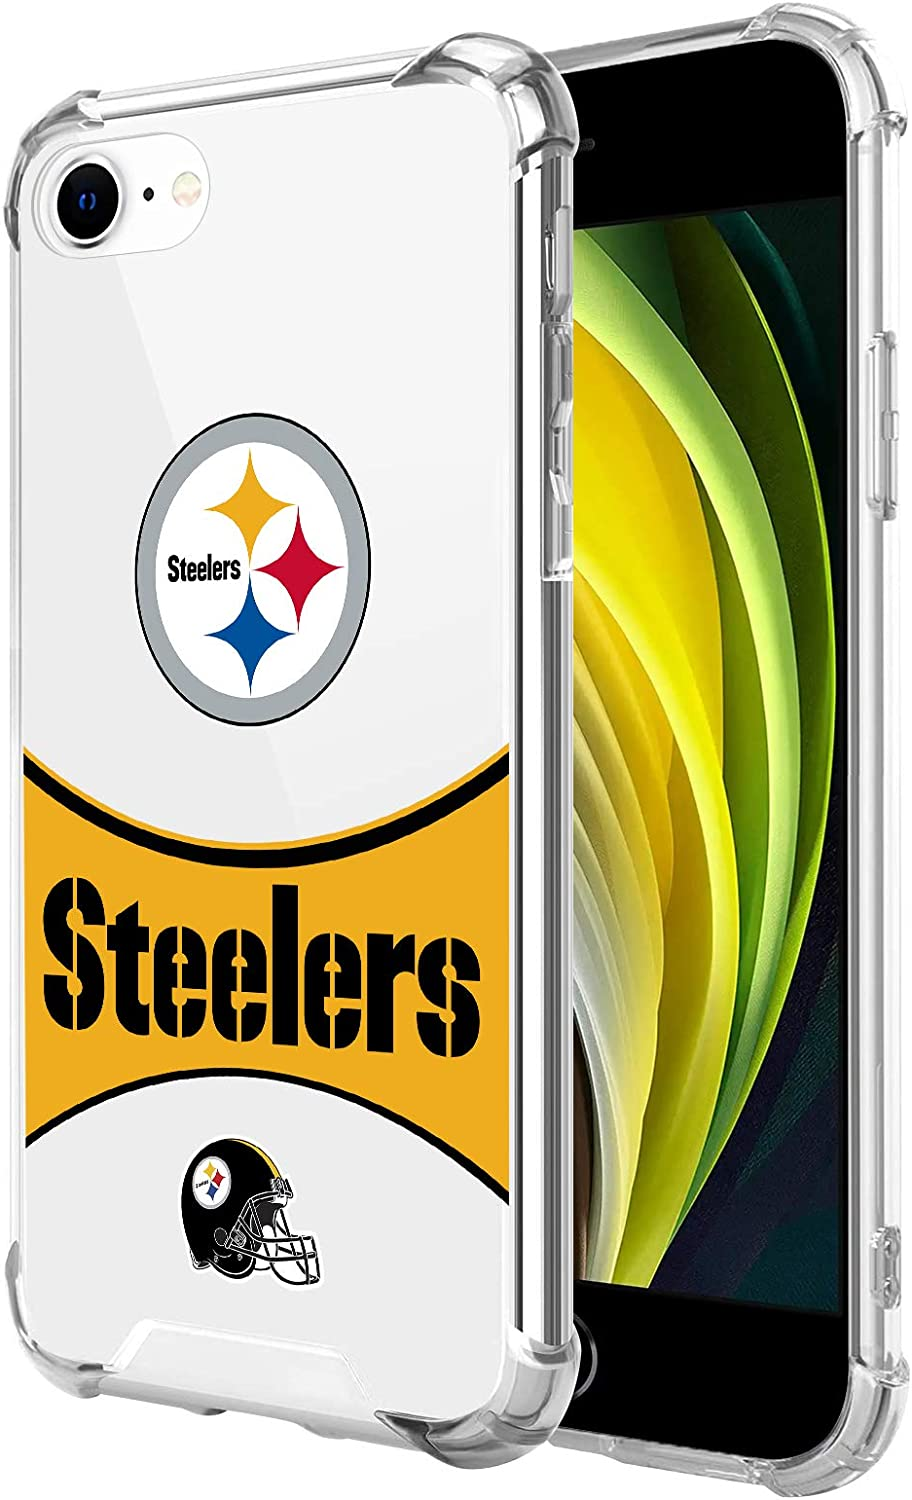 Compatible with iPhone 7 iPhone 8 iPhone SE 2020 Clear Case, Reinforced 4 Corner Shockproof TPU Bumper Anti-Scratch Phone Case for iPhone 7/8 /SE 2020 4.7 inch (Flag Series-Steelers)